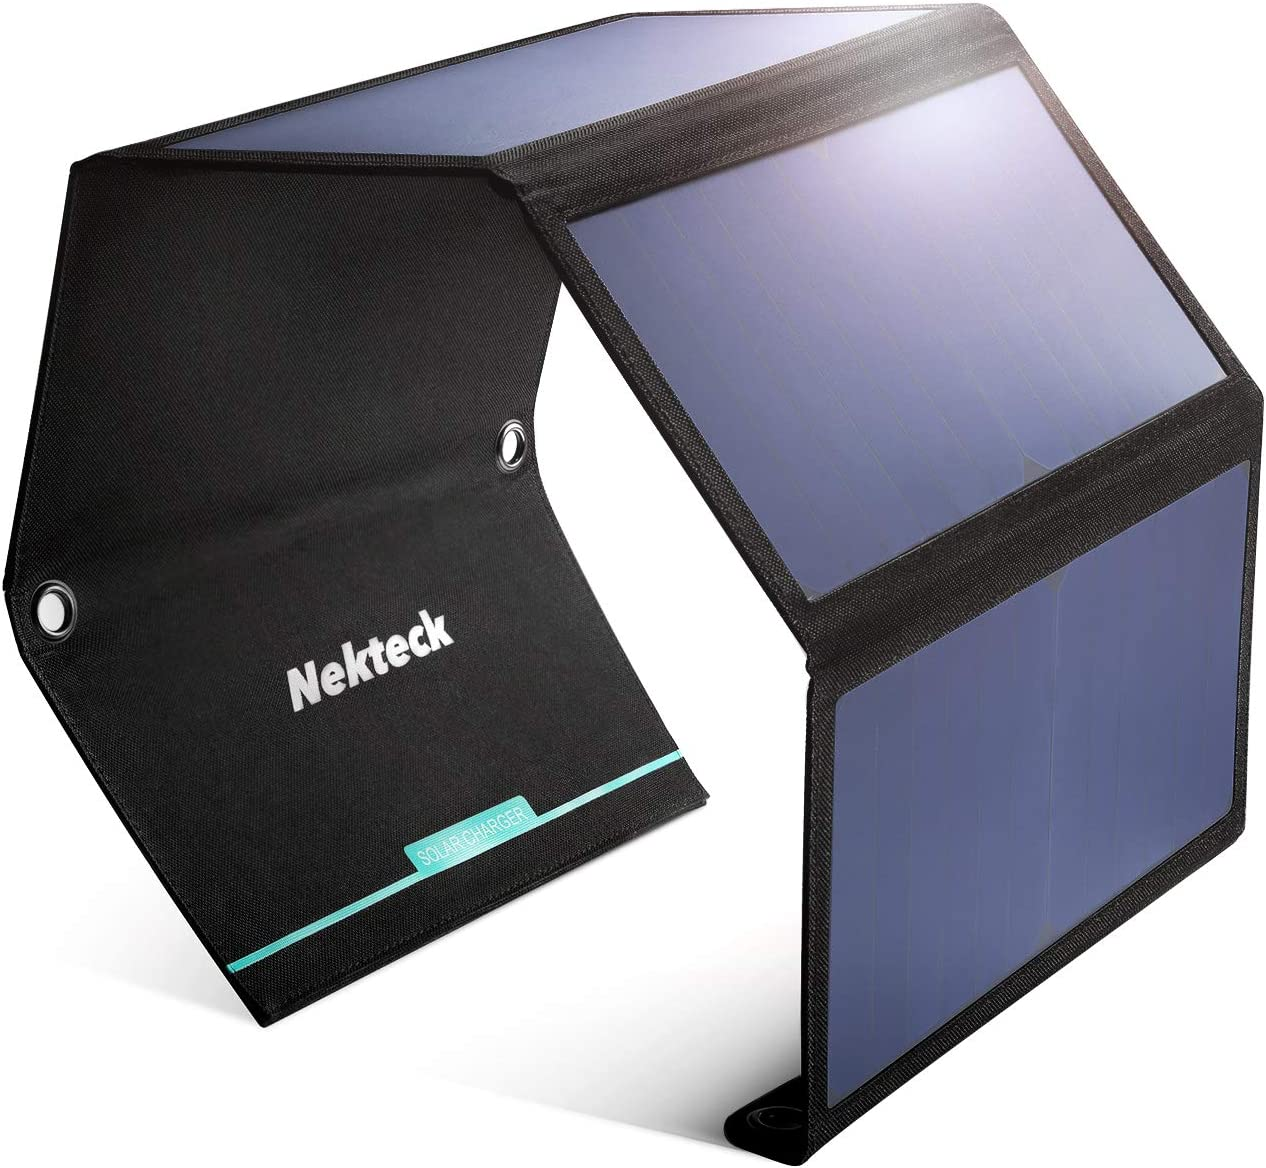 Nekteck 28W Portable Solar Panel Charger, Waterproof Camping Gear Solar Powered Charger with 2 USB Port for iPhone 12/11/Xs/X, iPad Pro/Air/Mini, Samsung Galaxy S9/S8, Tablet and Any USB Devices